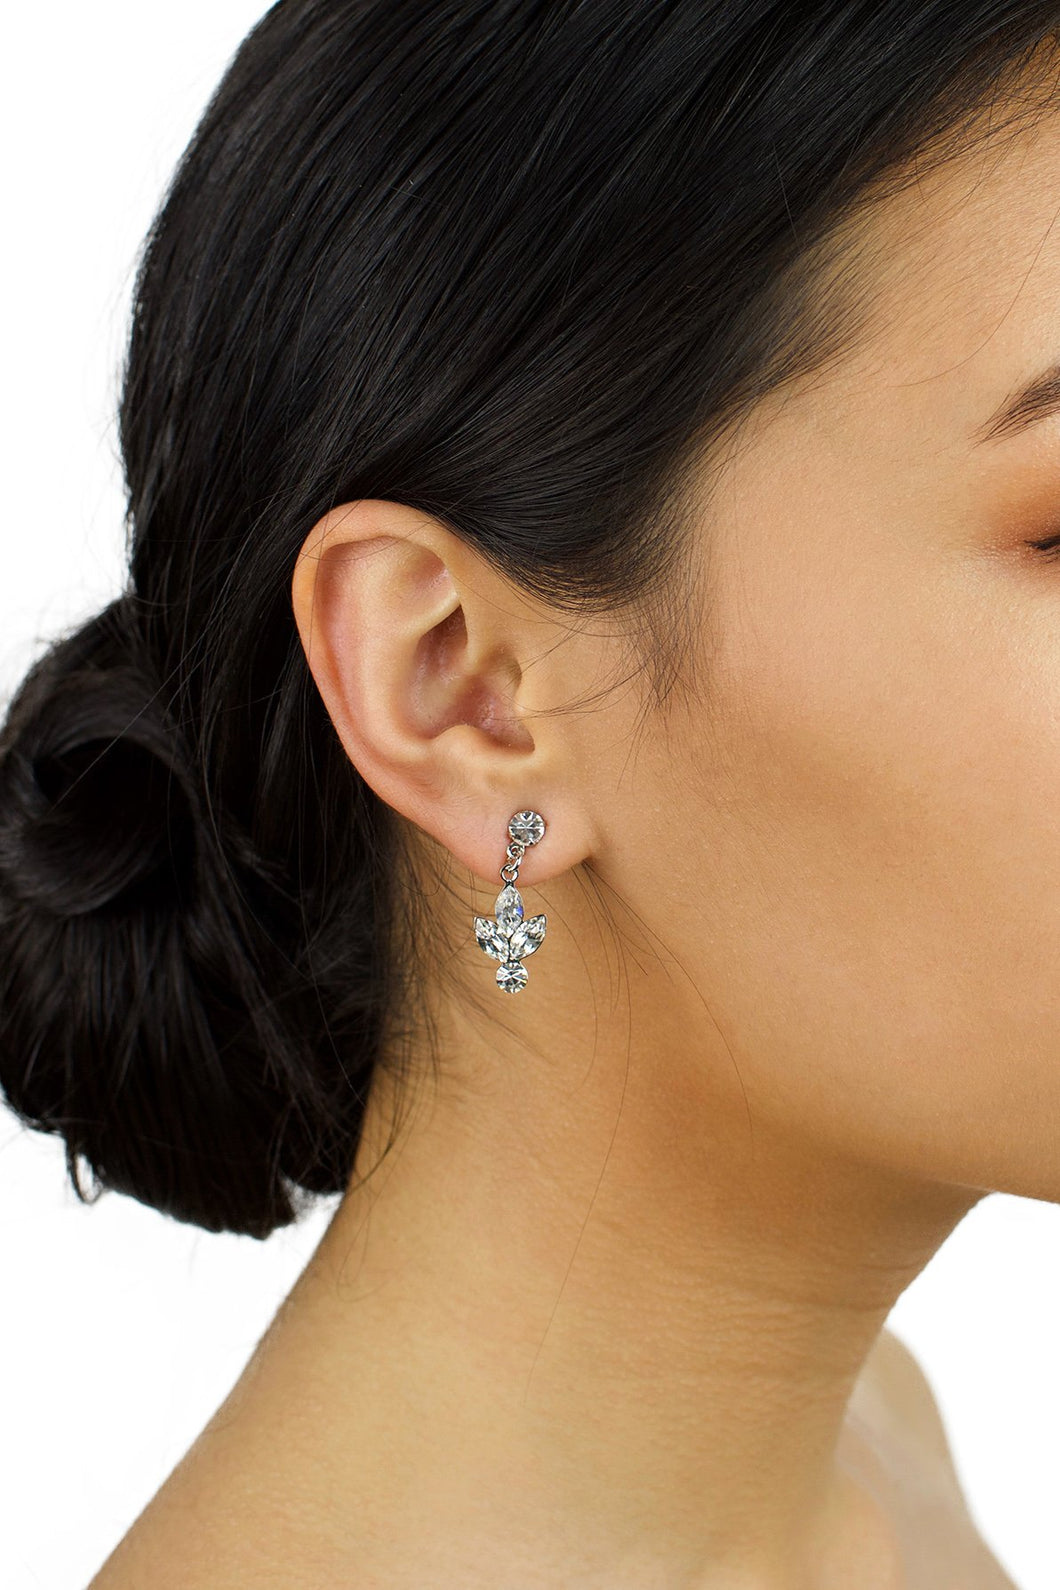 Small handmade Swarovski Earring worn by a bride with up style hair